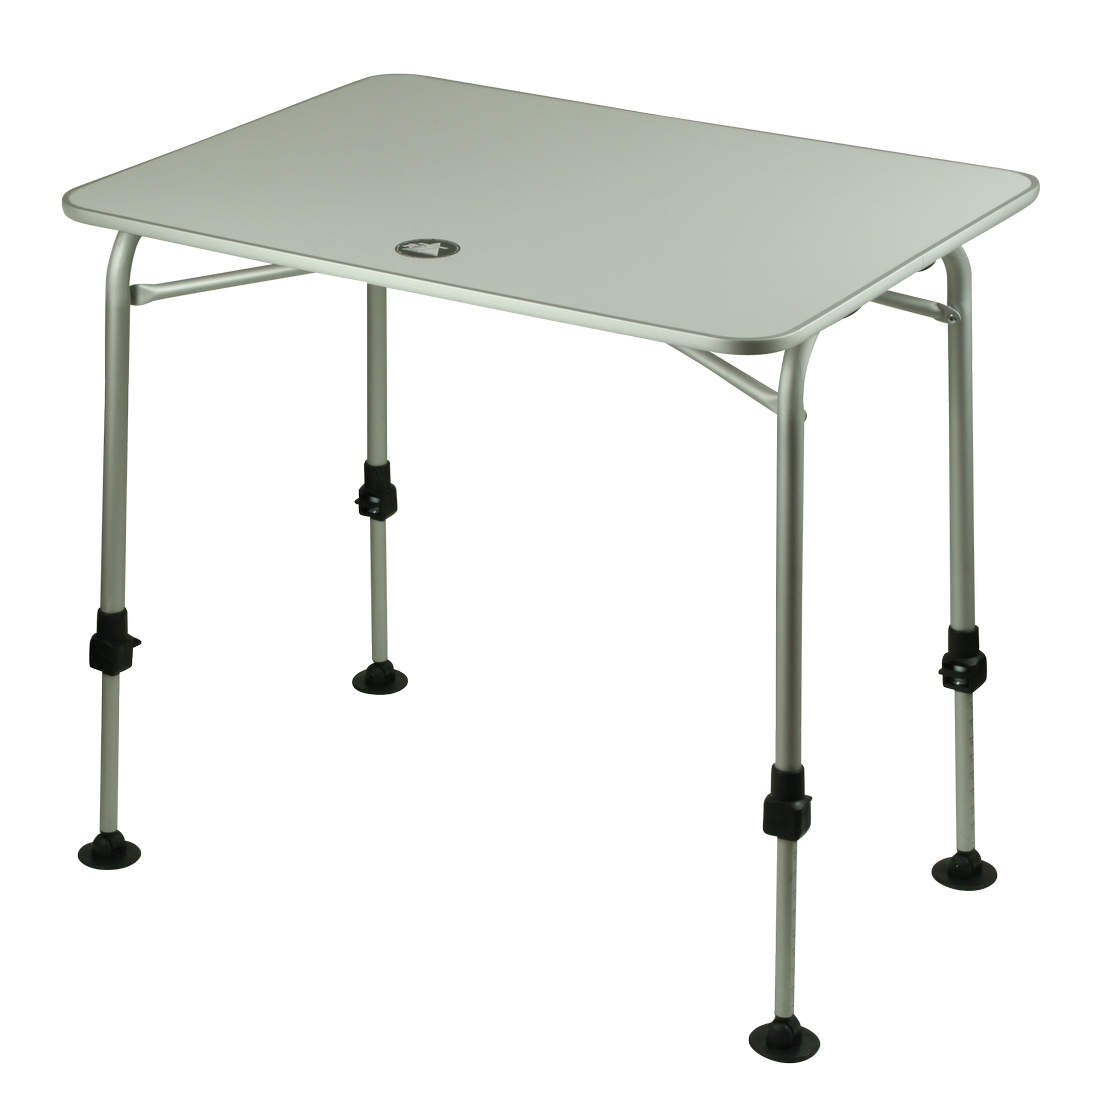 10t Flaprack Single Camping Foldable Table 80x60 Cm Stable Aluminium Table Top Telescopic